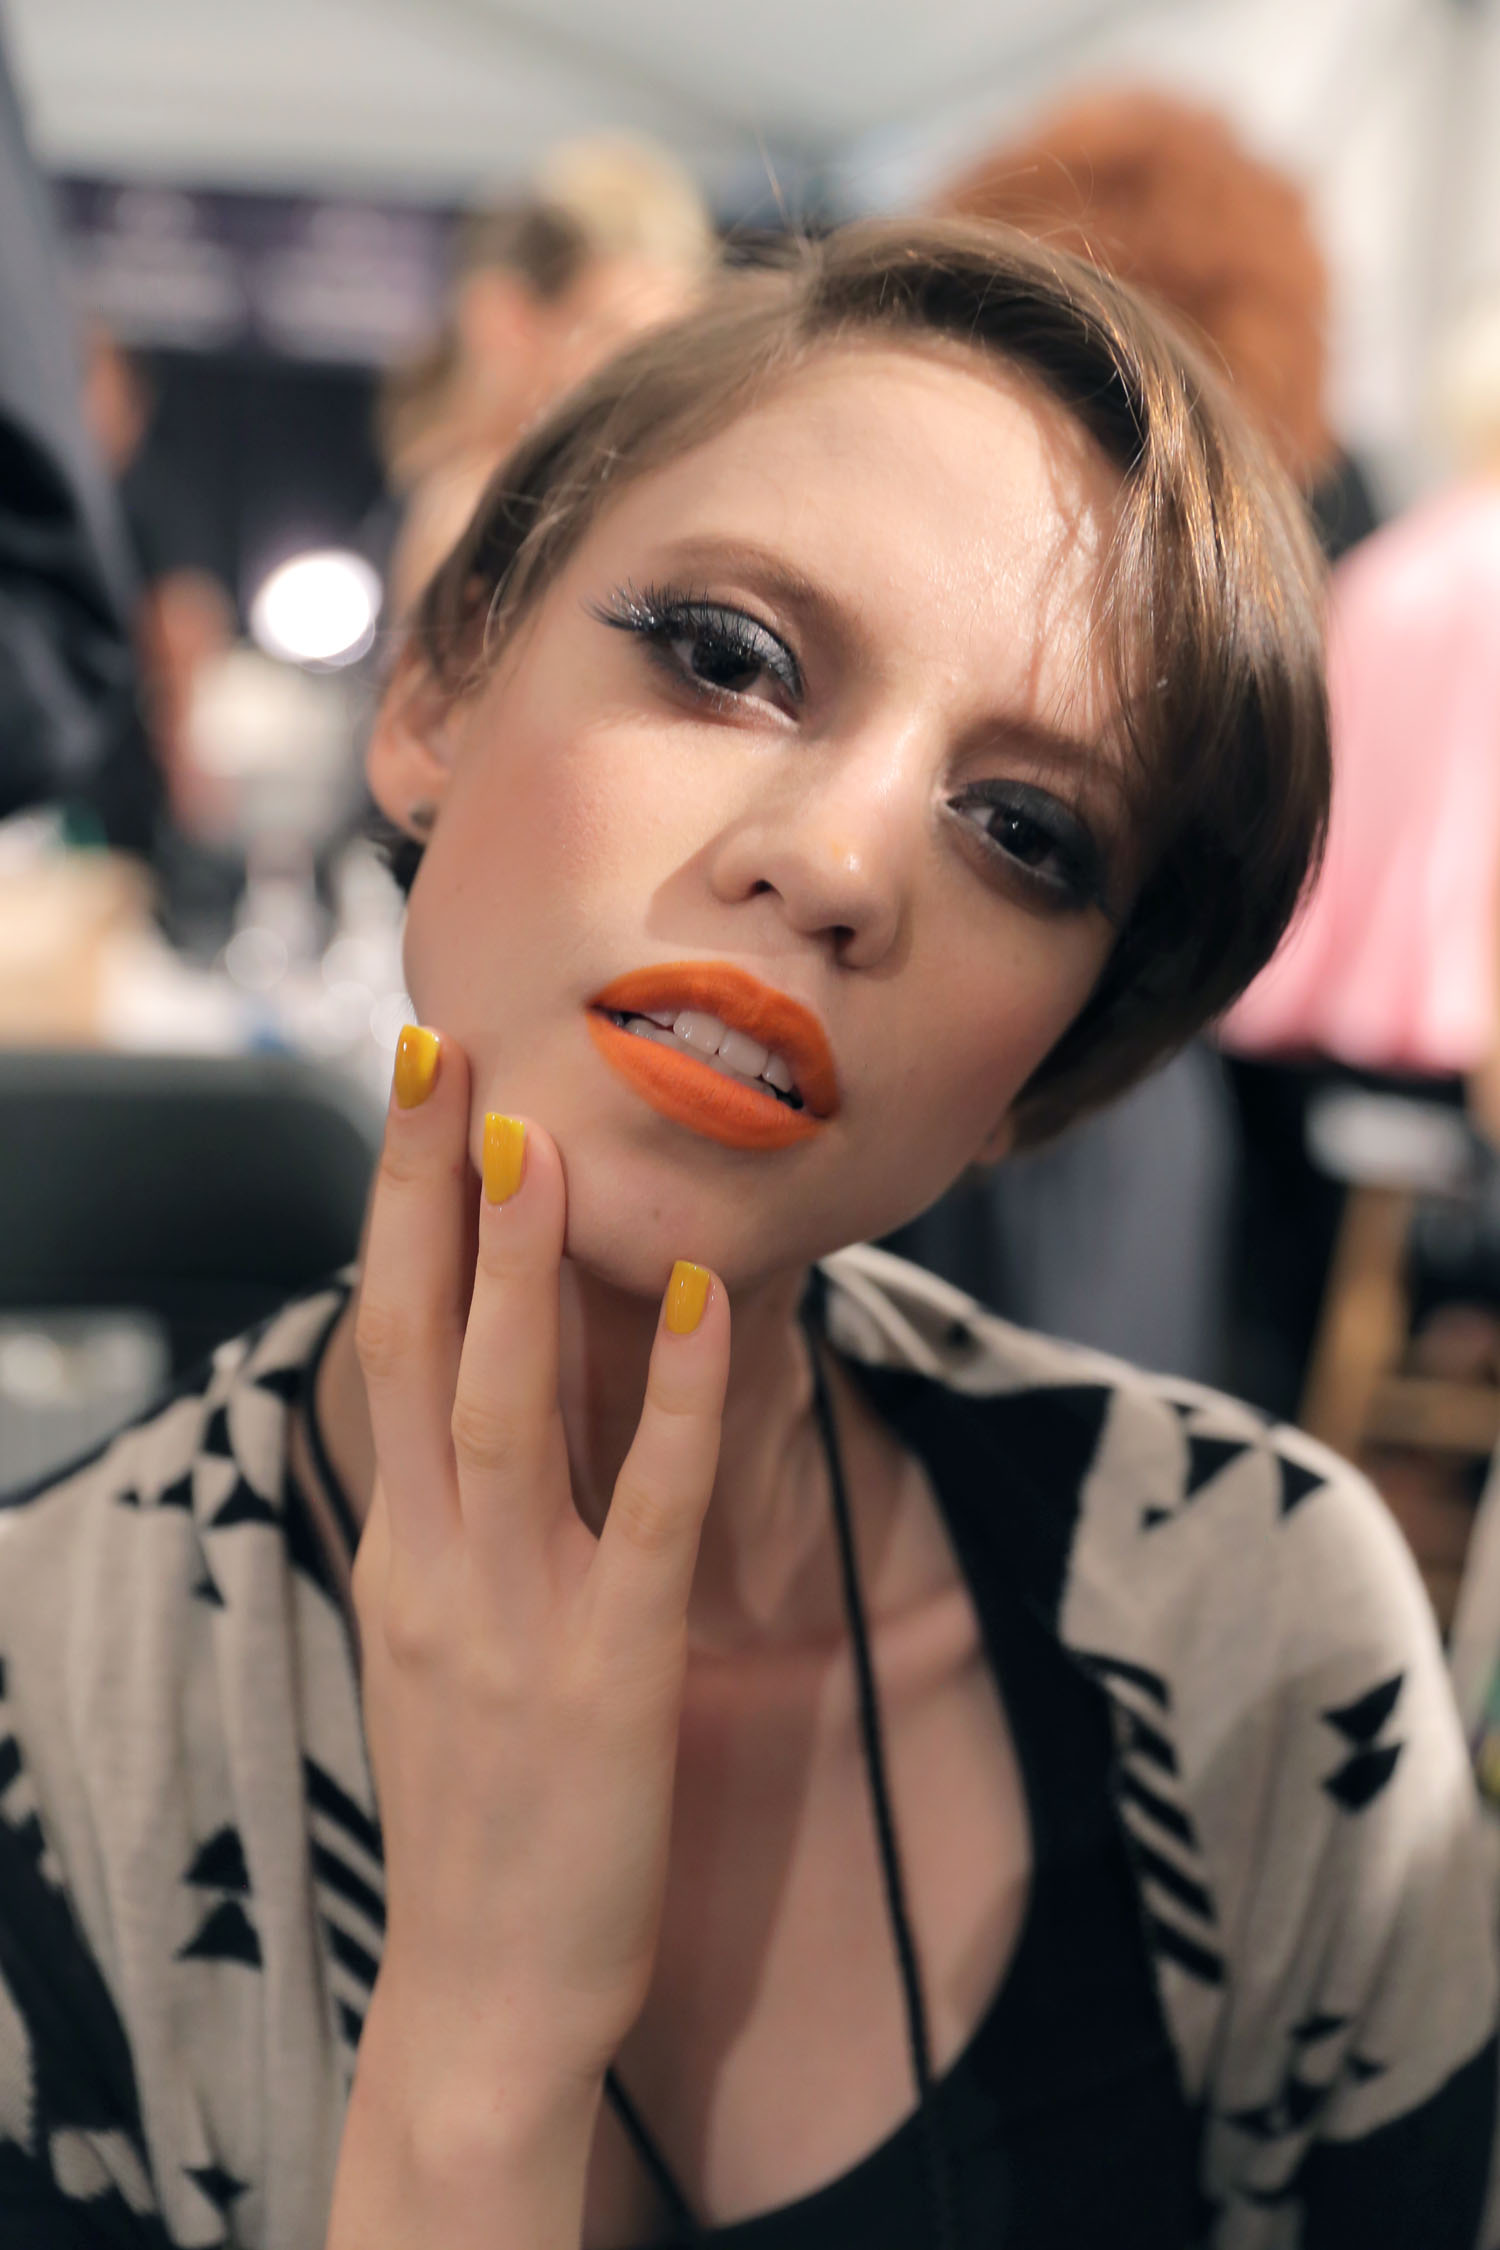 NYFW S/S Nails 2014: OPI Brights Paired With Earth Tones